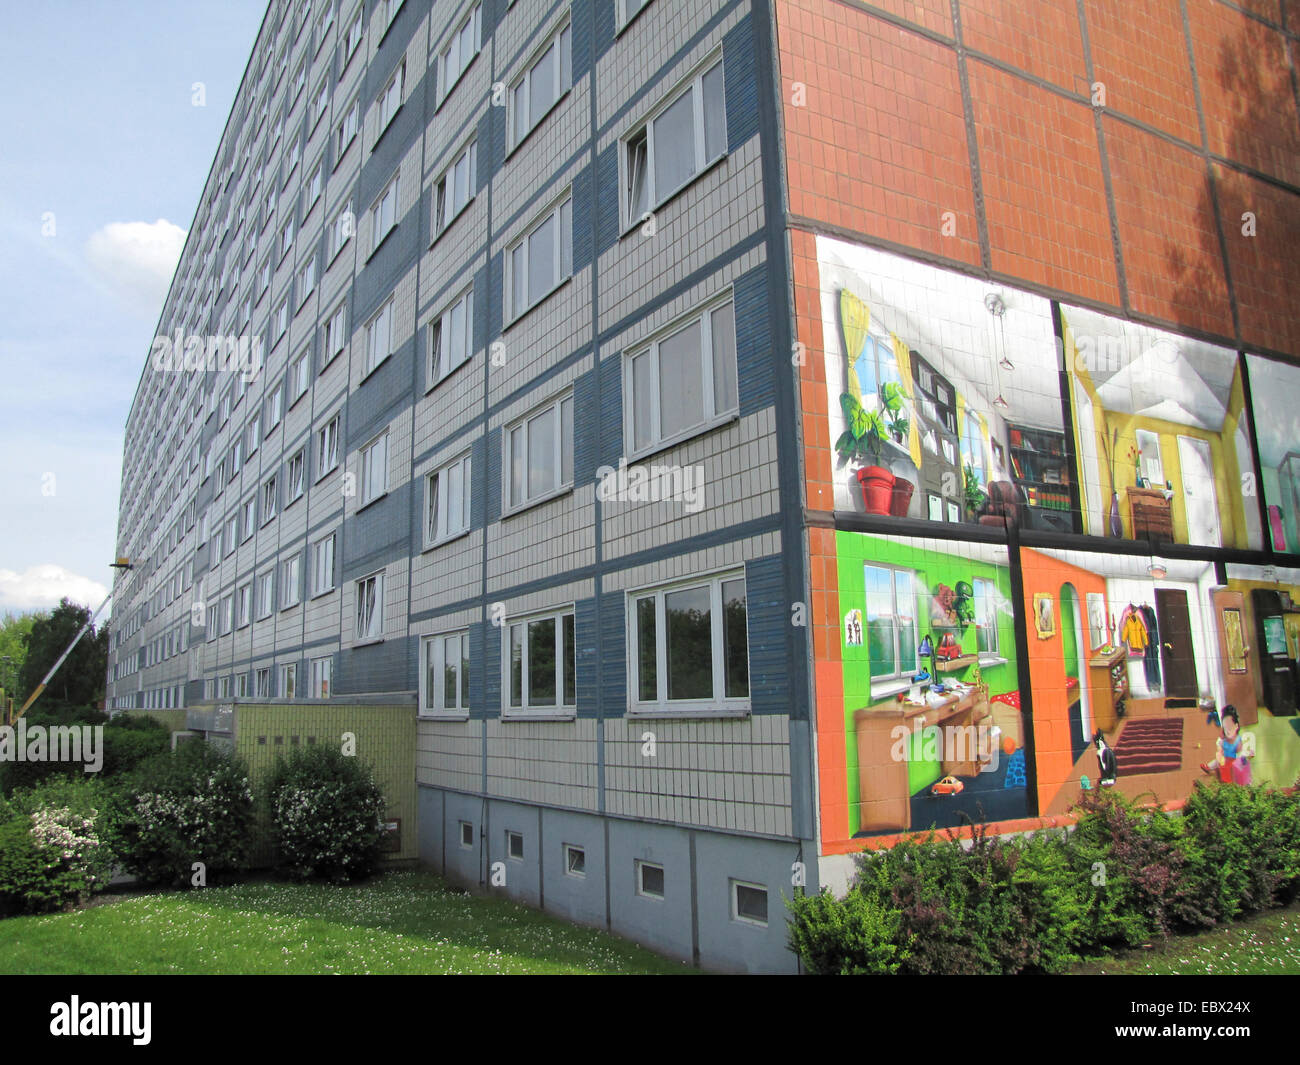 housing estate in former East Germany, socialist buildings, paintings on side wall of the building, Germany, Mecklenburg - Stock Image